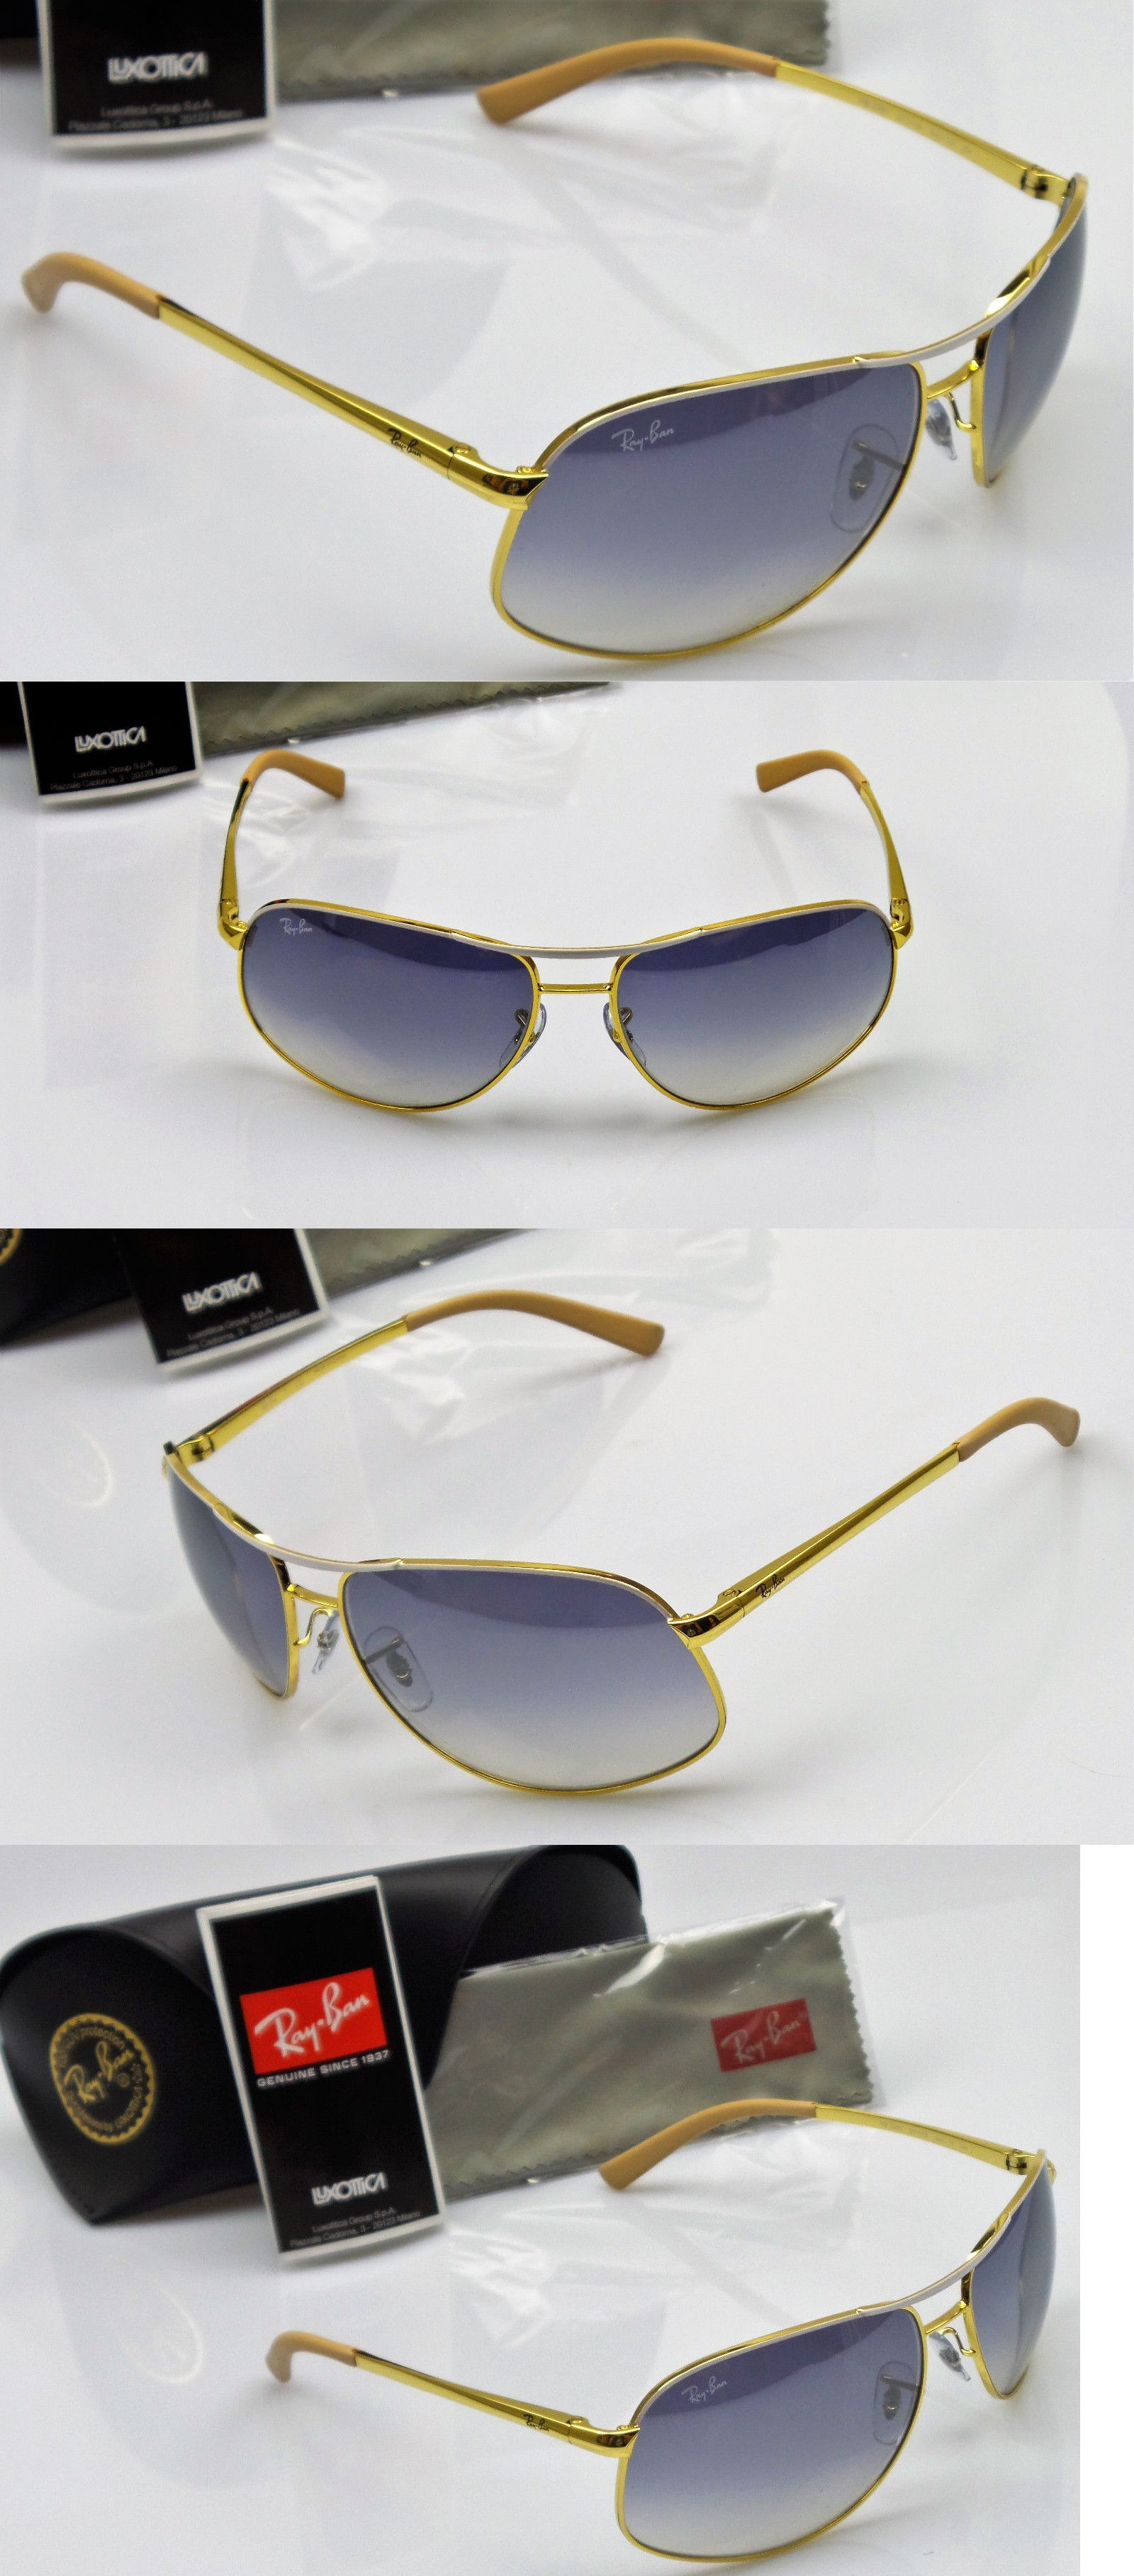 4343f5271d2 Sunglass Lens Replacements 179194  Ray Ban Rb3387 077 7B Mens Gold White  Frame Blue Gradient